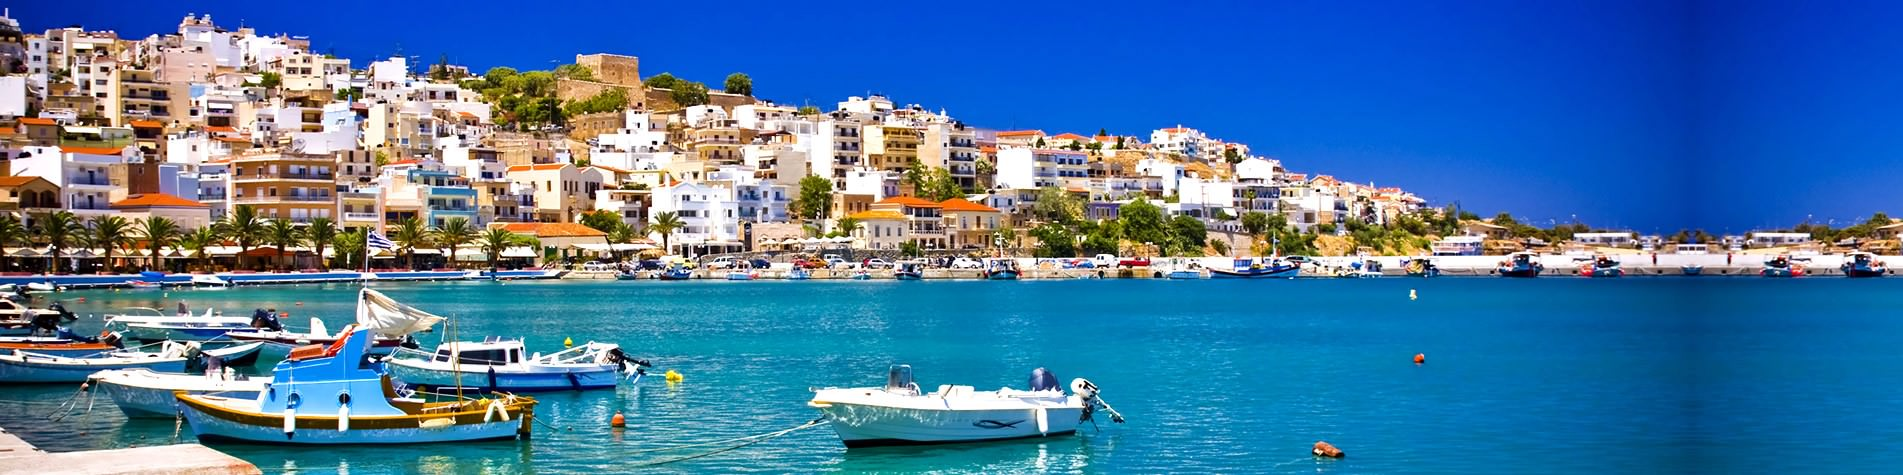 Plaka of Elounda Holidays with Cyplon Holidays